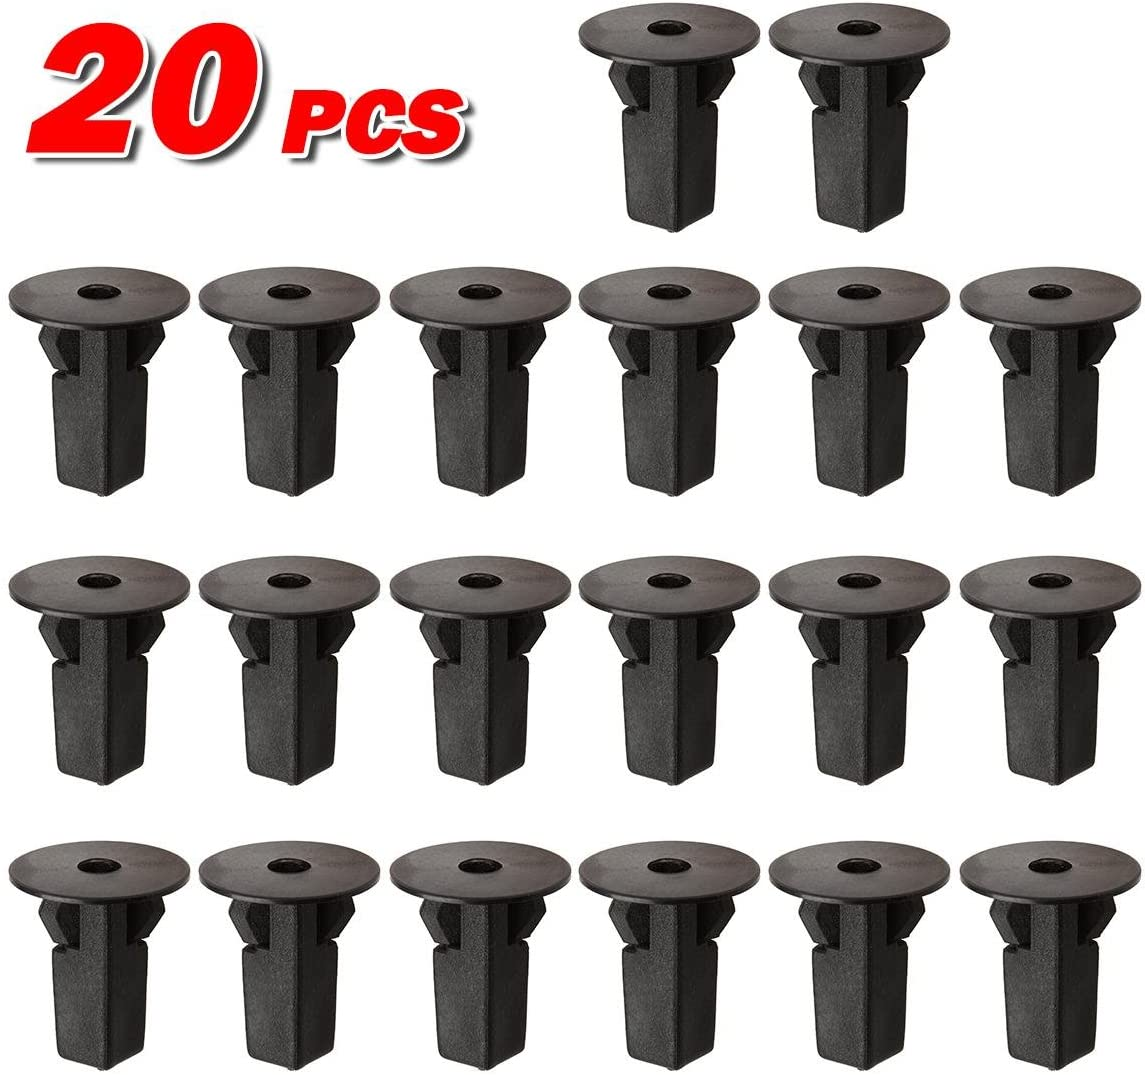 100pcs MOTOALL Nylon Hood Bumper Fender Liner Front Spoiler Trim Panel Shield Retainer Fastener M5.5#12 Screw Grommet Rivet Clips for 9mm x 9mm Hole Toyota Lexus 90189-06065